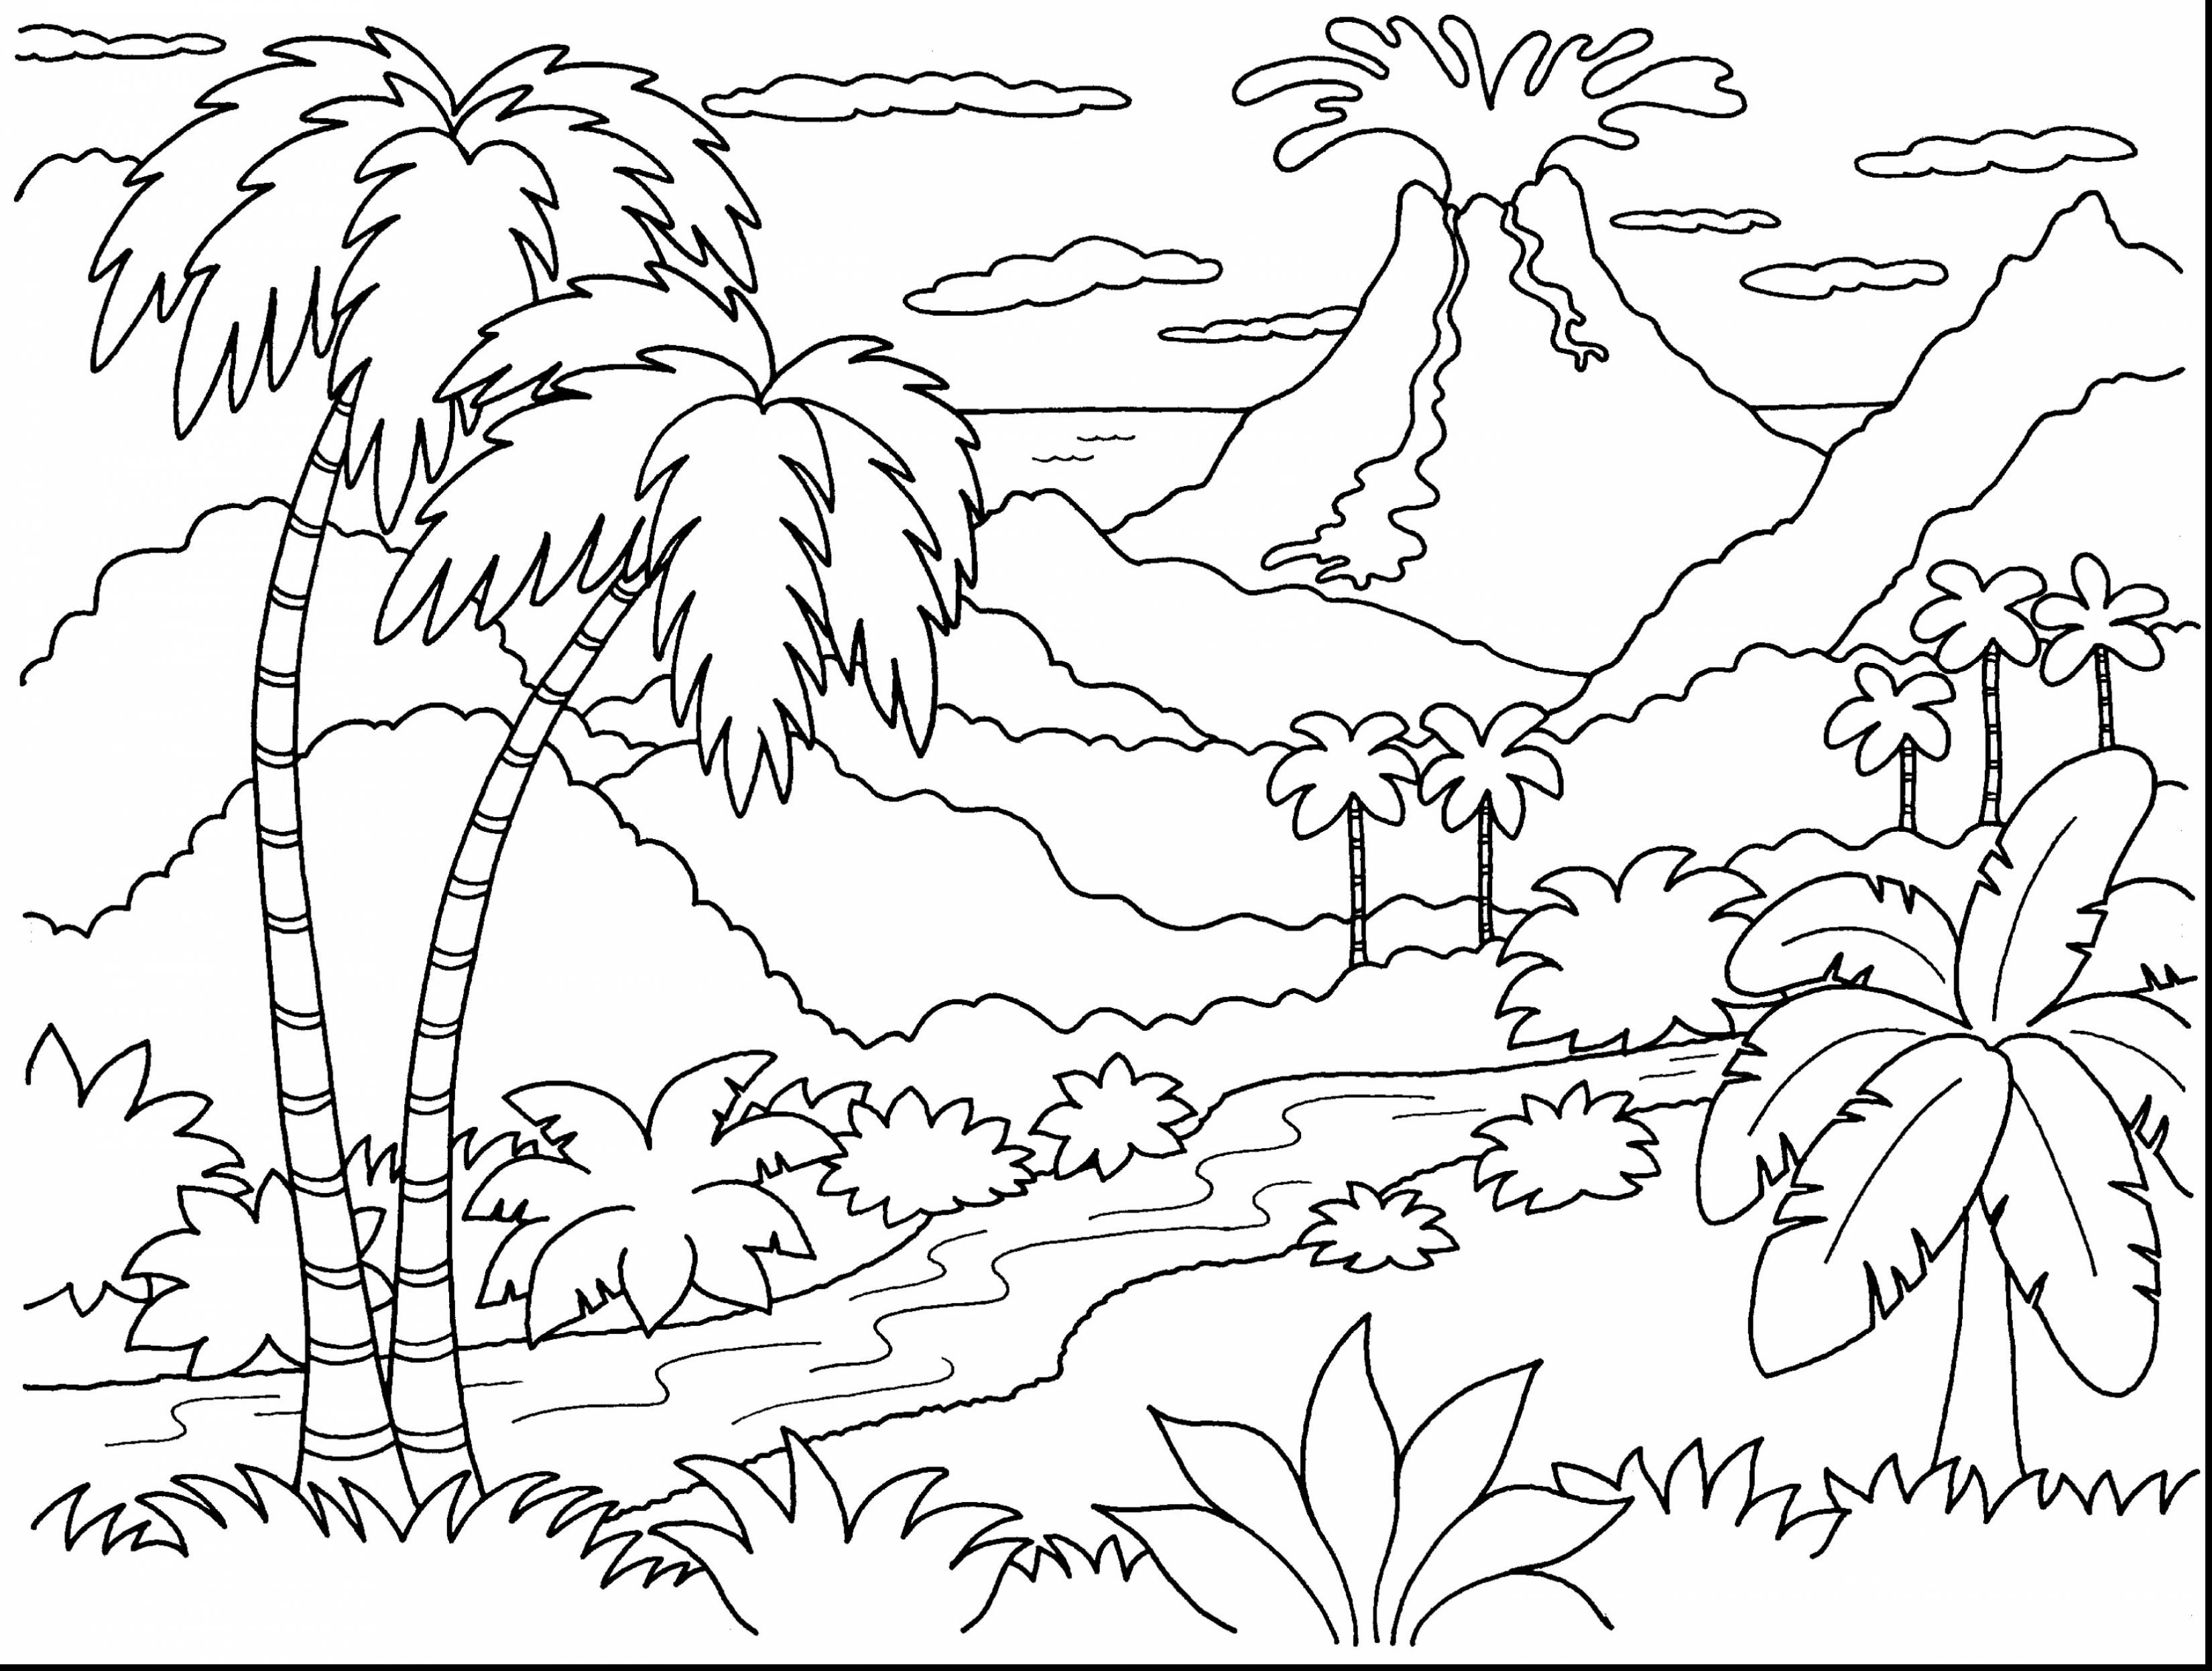 3300x2493 Volcano Coloring Pages Awesome Coloring Pages Volcano Coloring